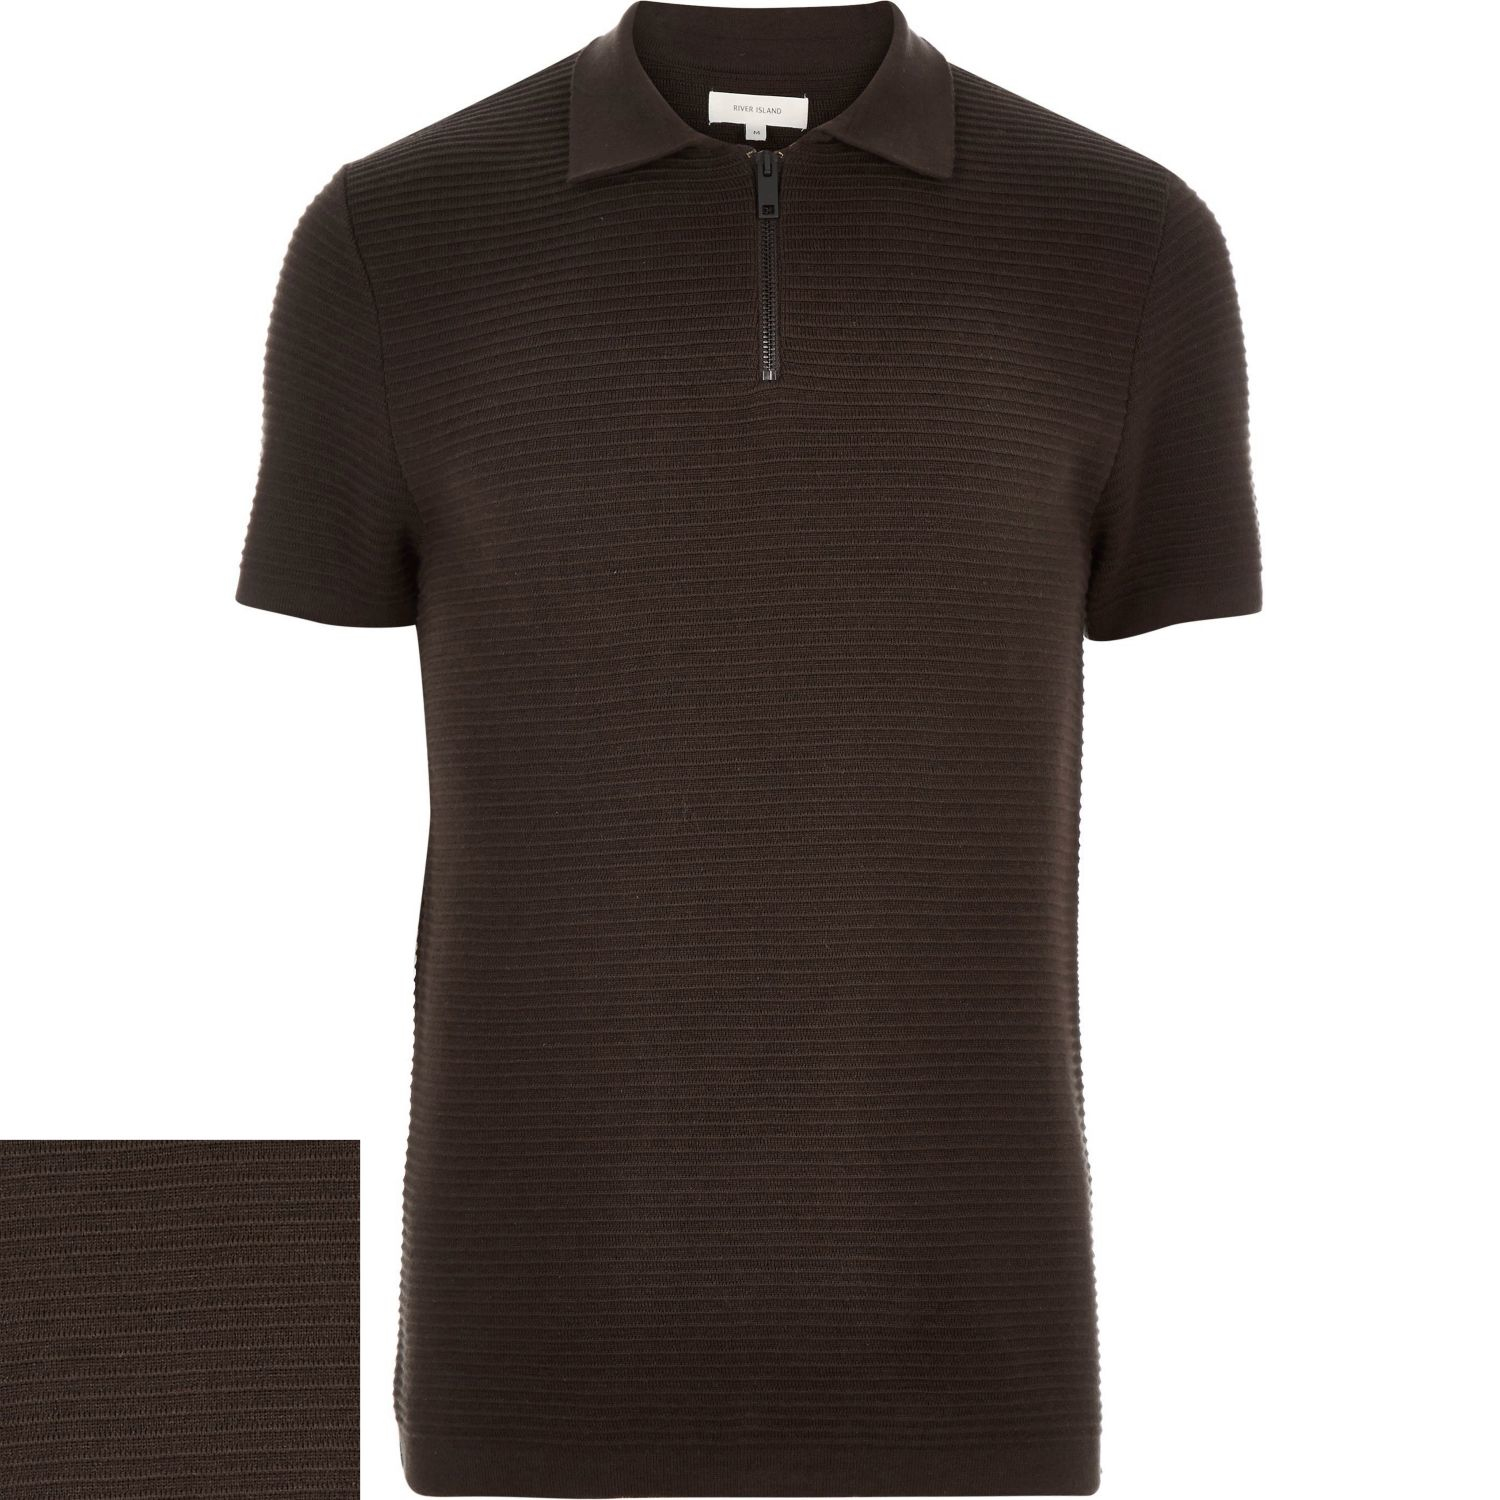 River island dark brown zip neck ribbed polo shirt in for Black brown mens shirts